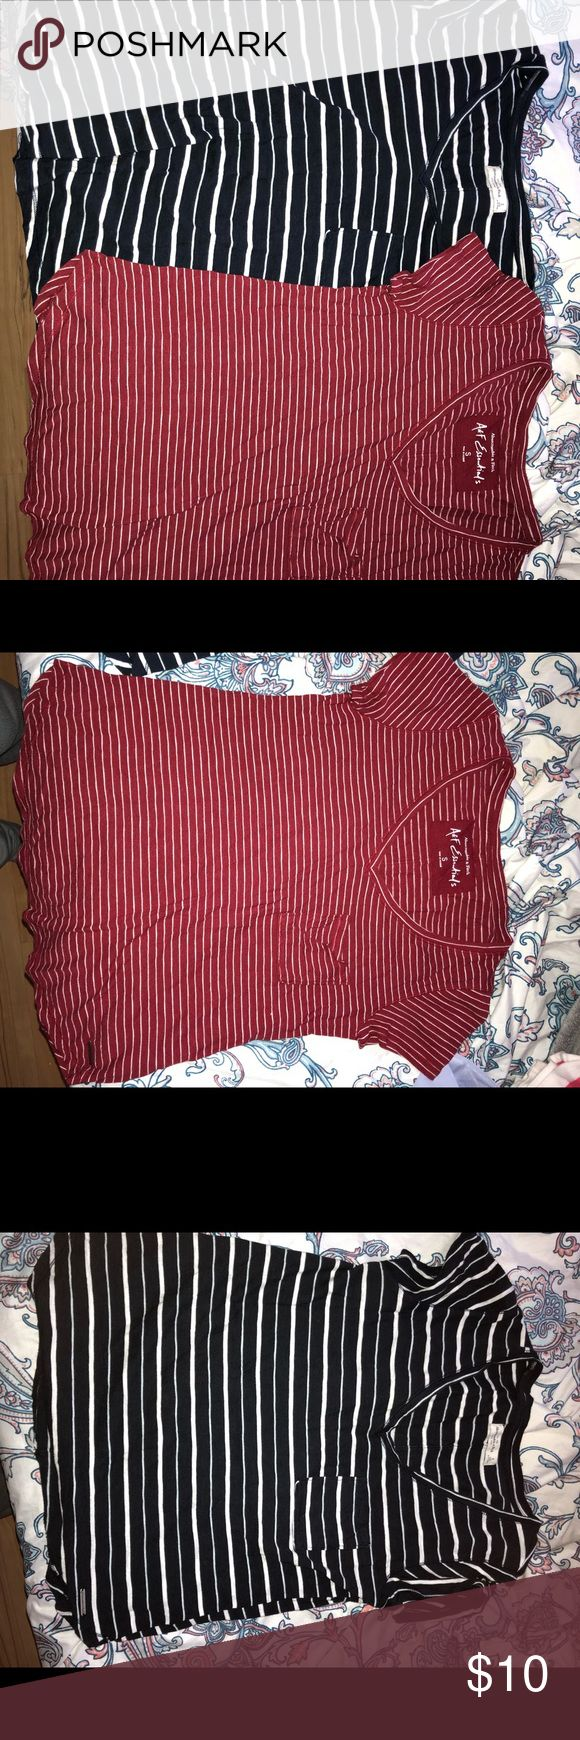 Navy blue and red Abercrombie and Fitch t-shirts 2 for 20 or 1 for 10 Abercrombie & Fitch Tops Tees - Short Sleeve